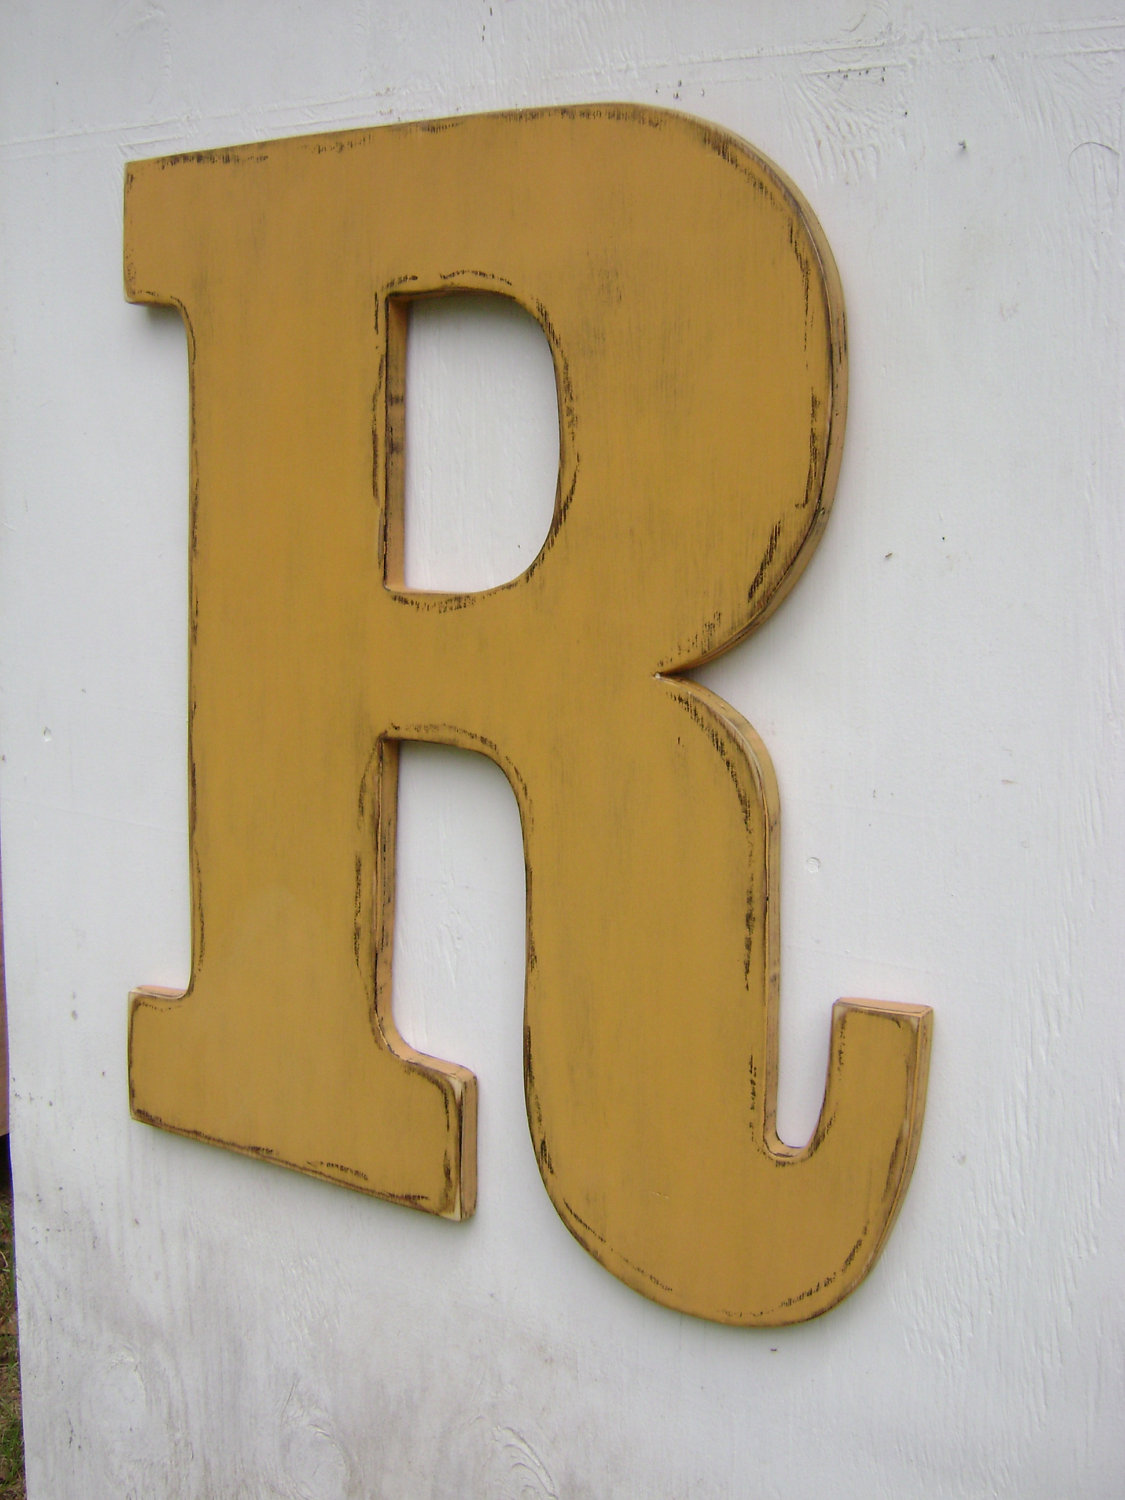 wedding quest book letter decor rustic wooden letter r big 24 inches